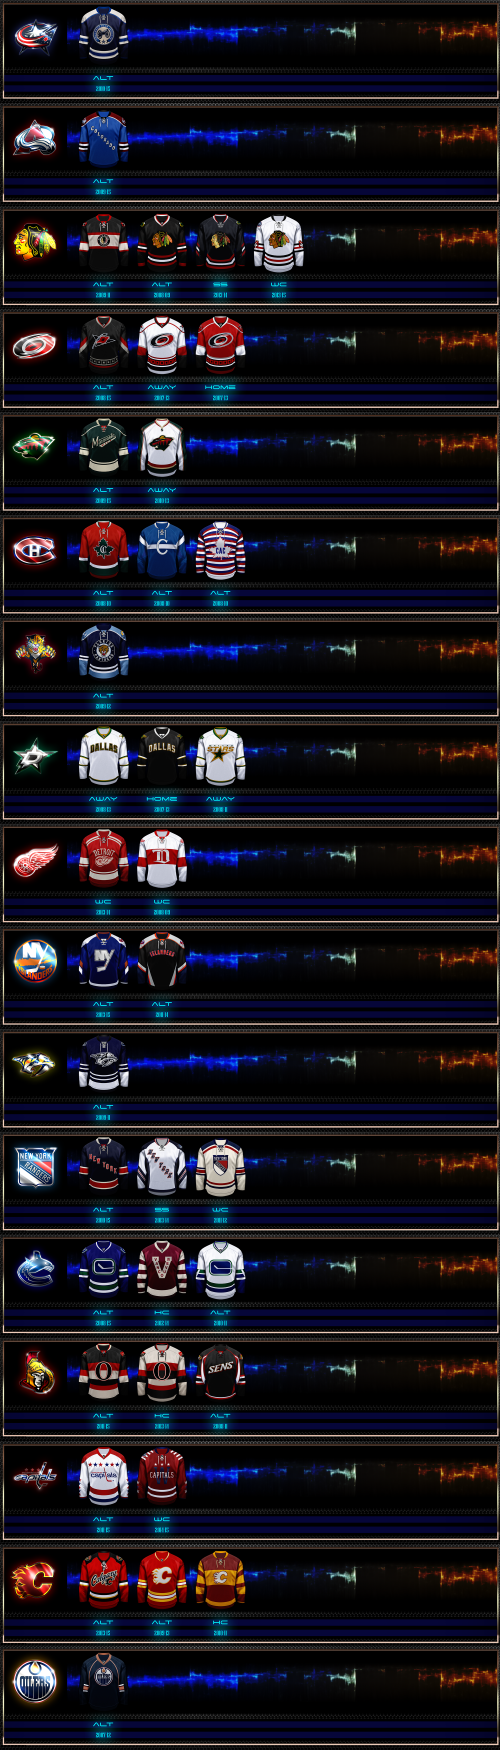 Screenshot for NHL Alternate Jerseys Patch_part II